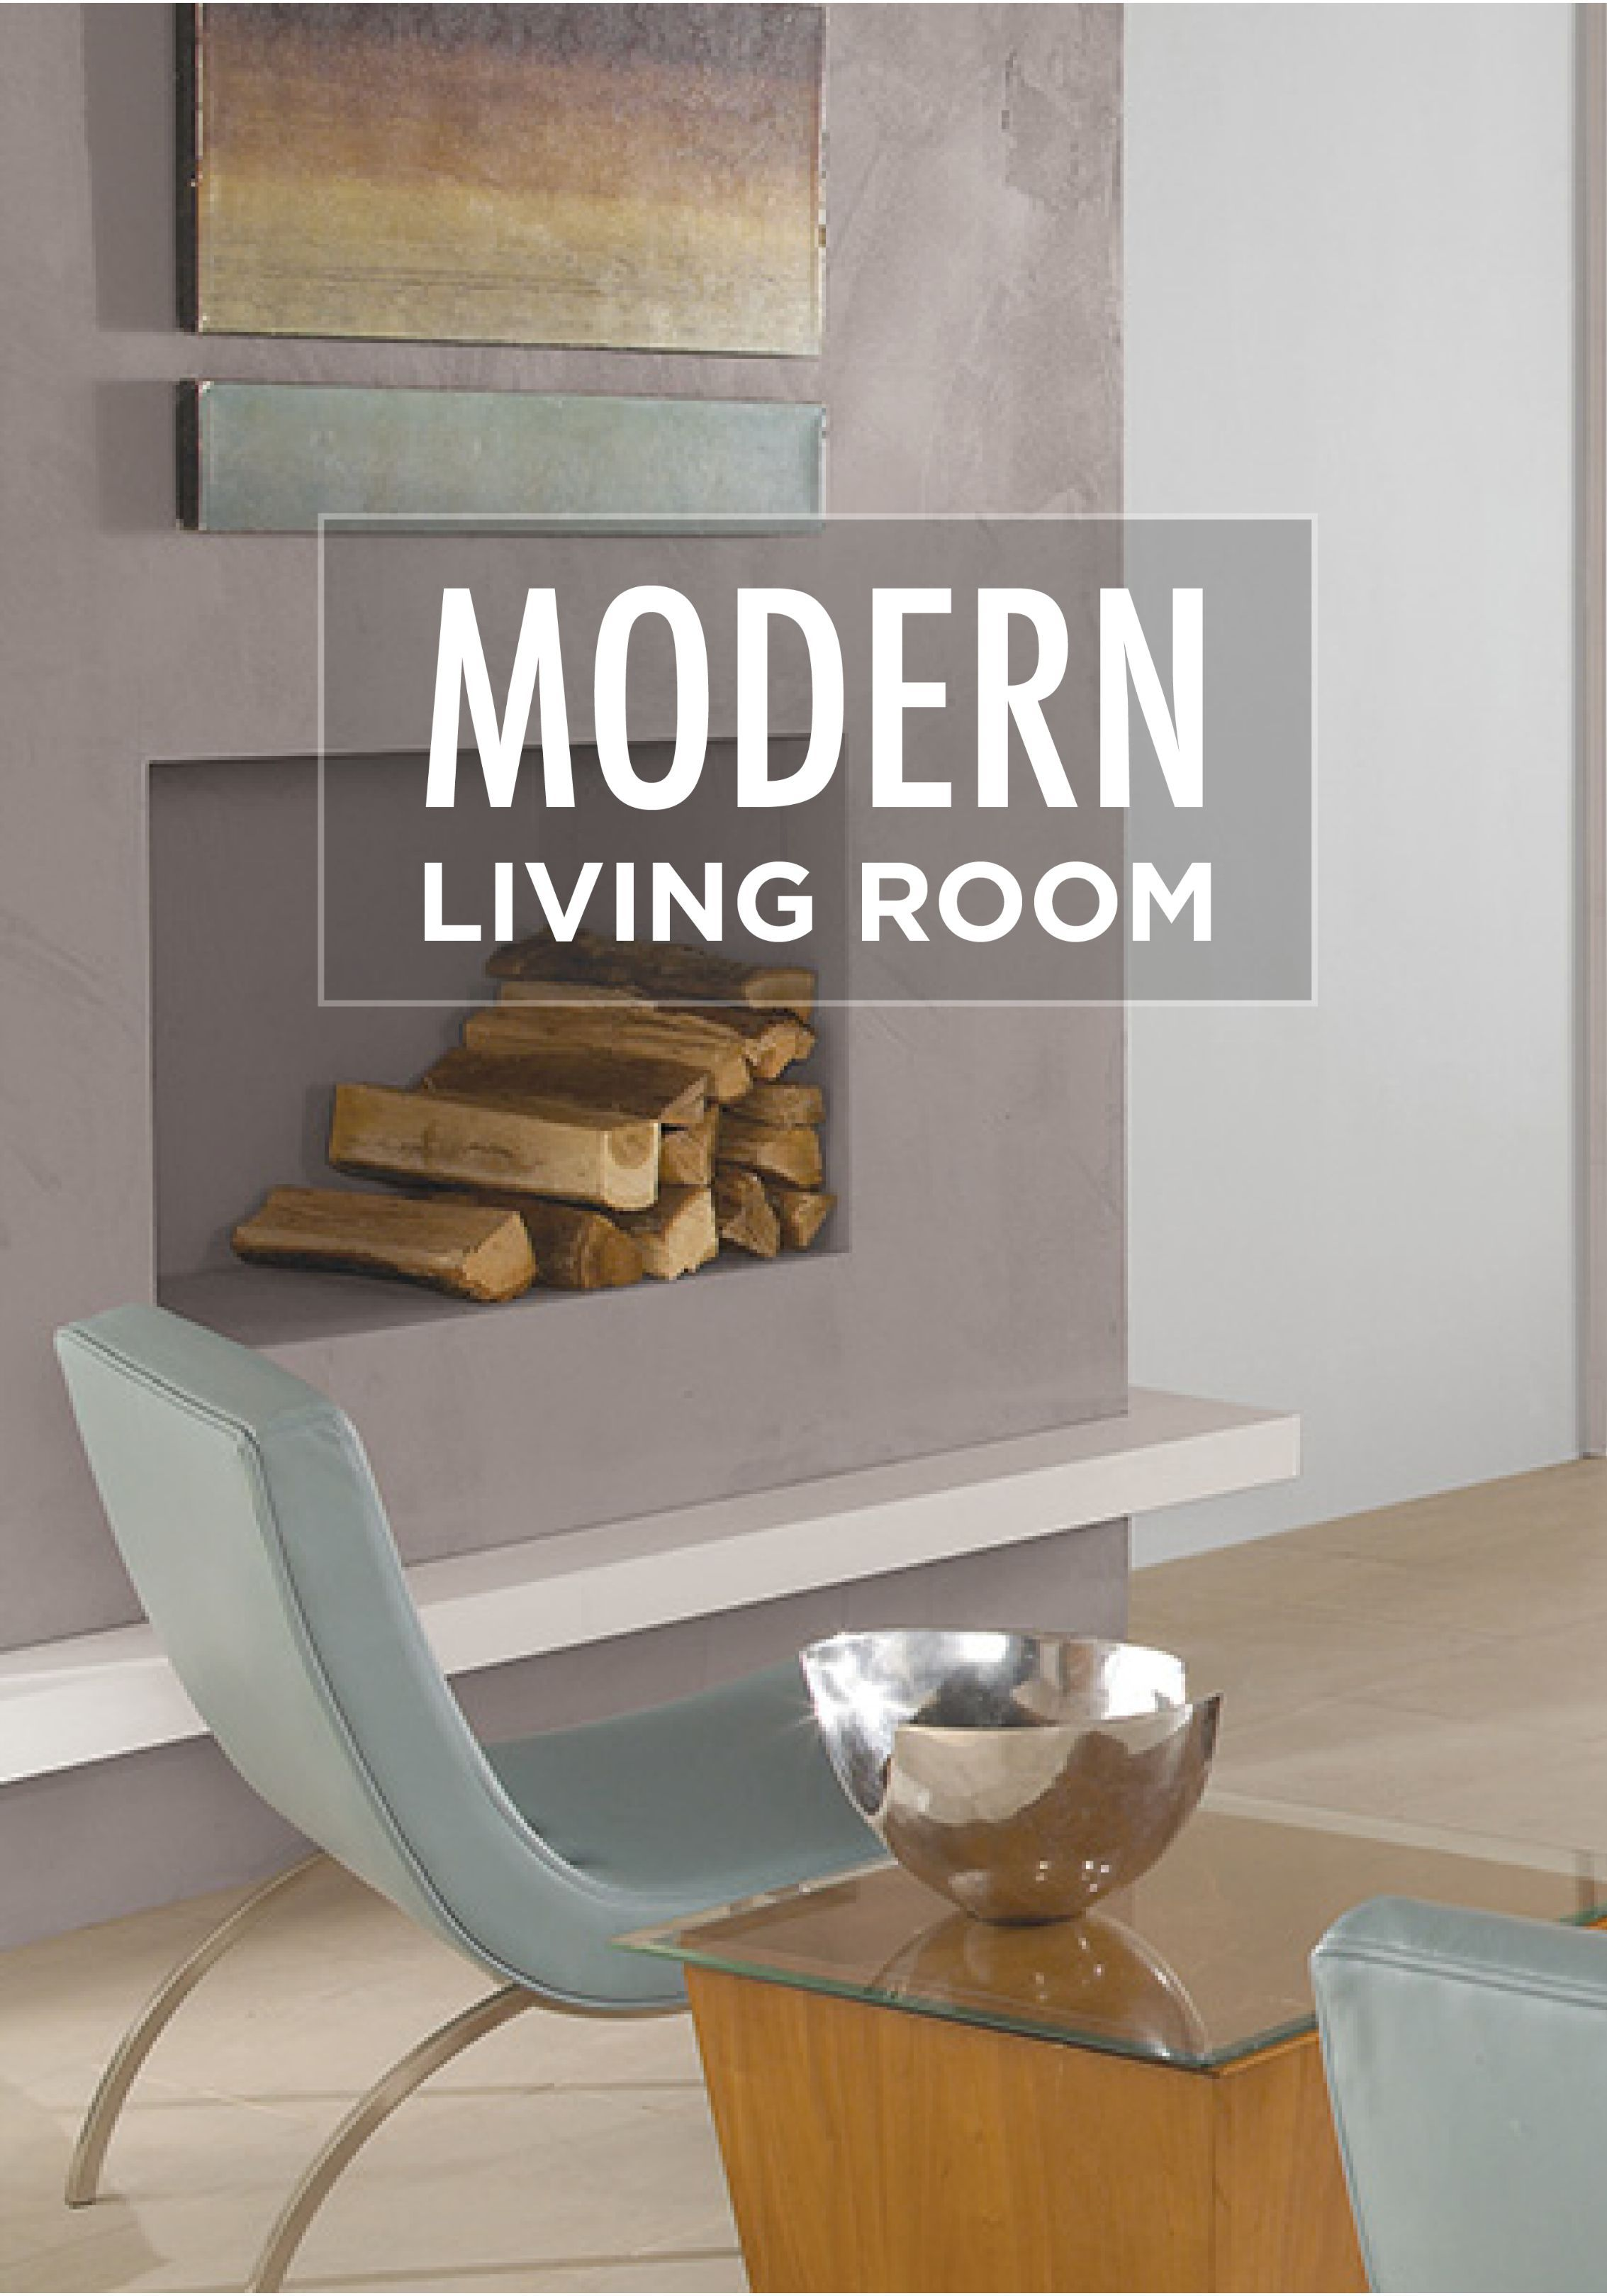 Simplify The Interior Design Of Your Home With Modern Furniture Cool Paint Colors And Streamlined Decor BEHR Can Help Create Perfect